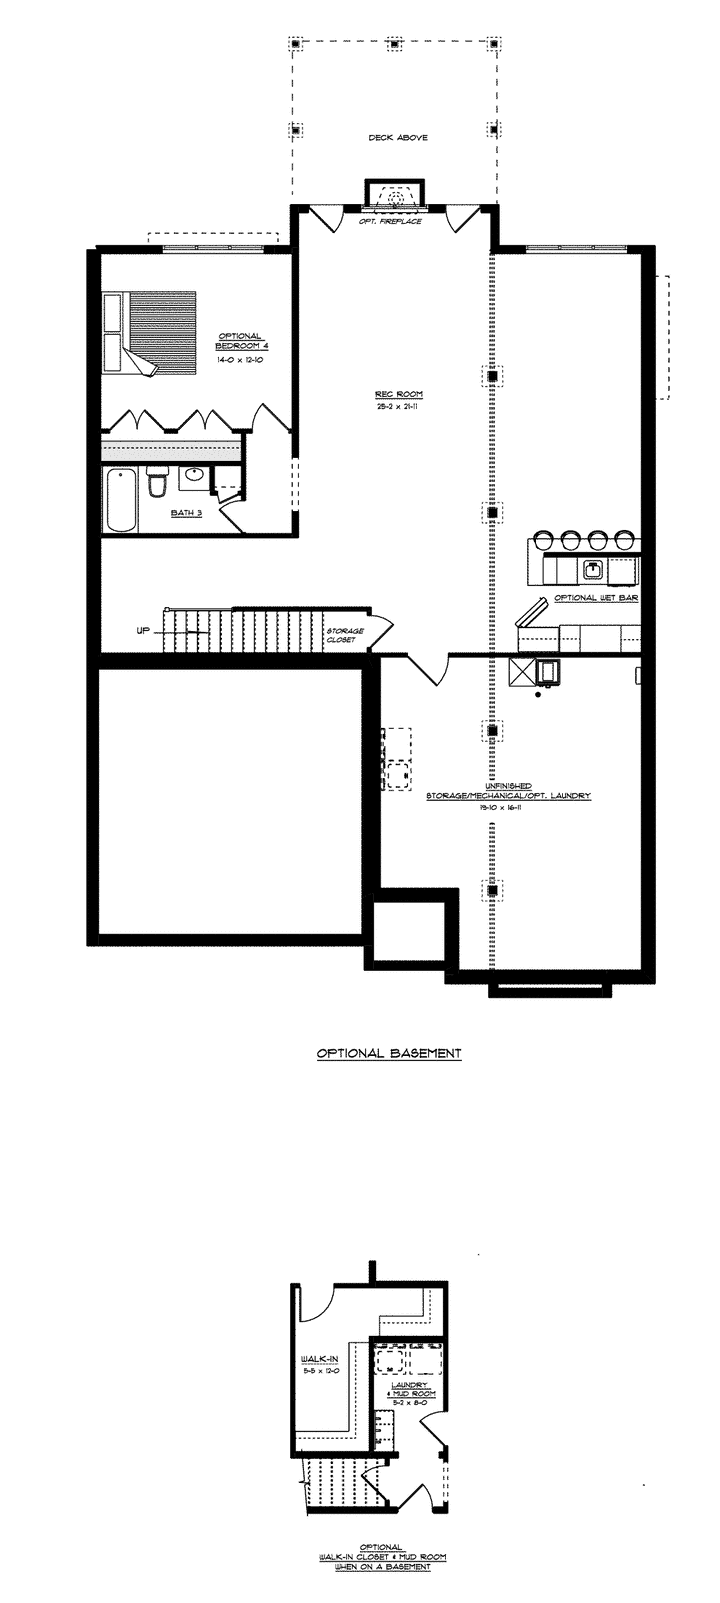 craig-builders-Glenmore-Pavilion-OPTIONAL-BASEMENT